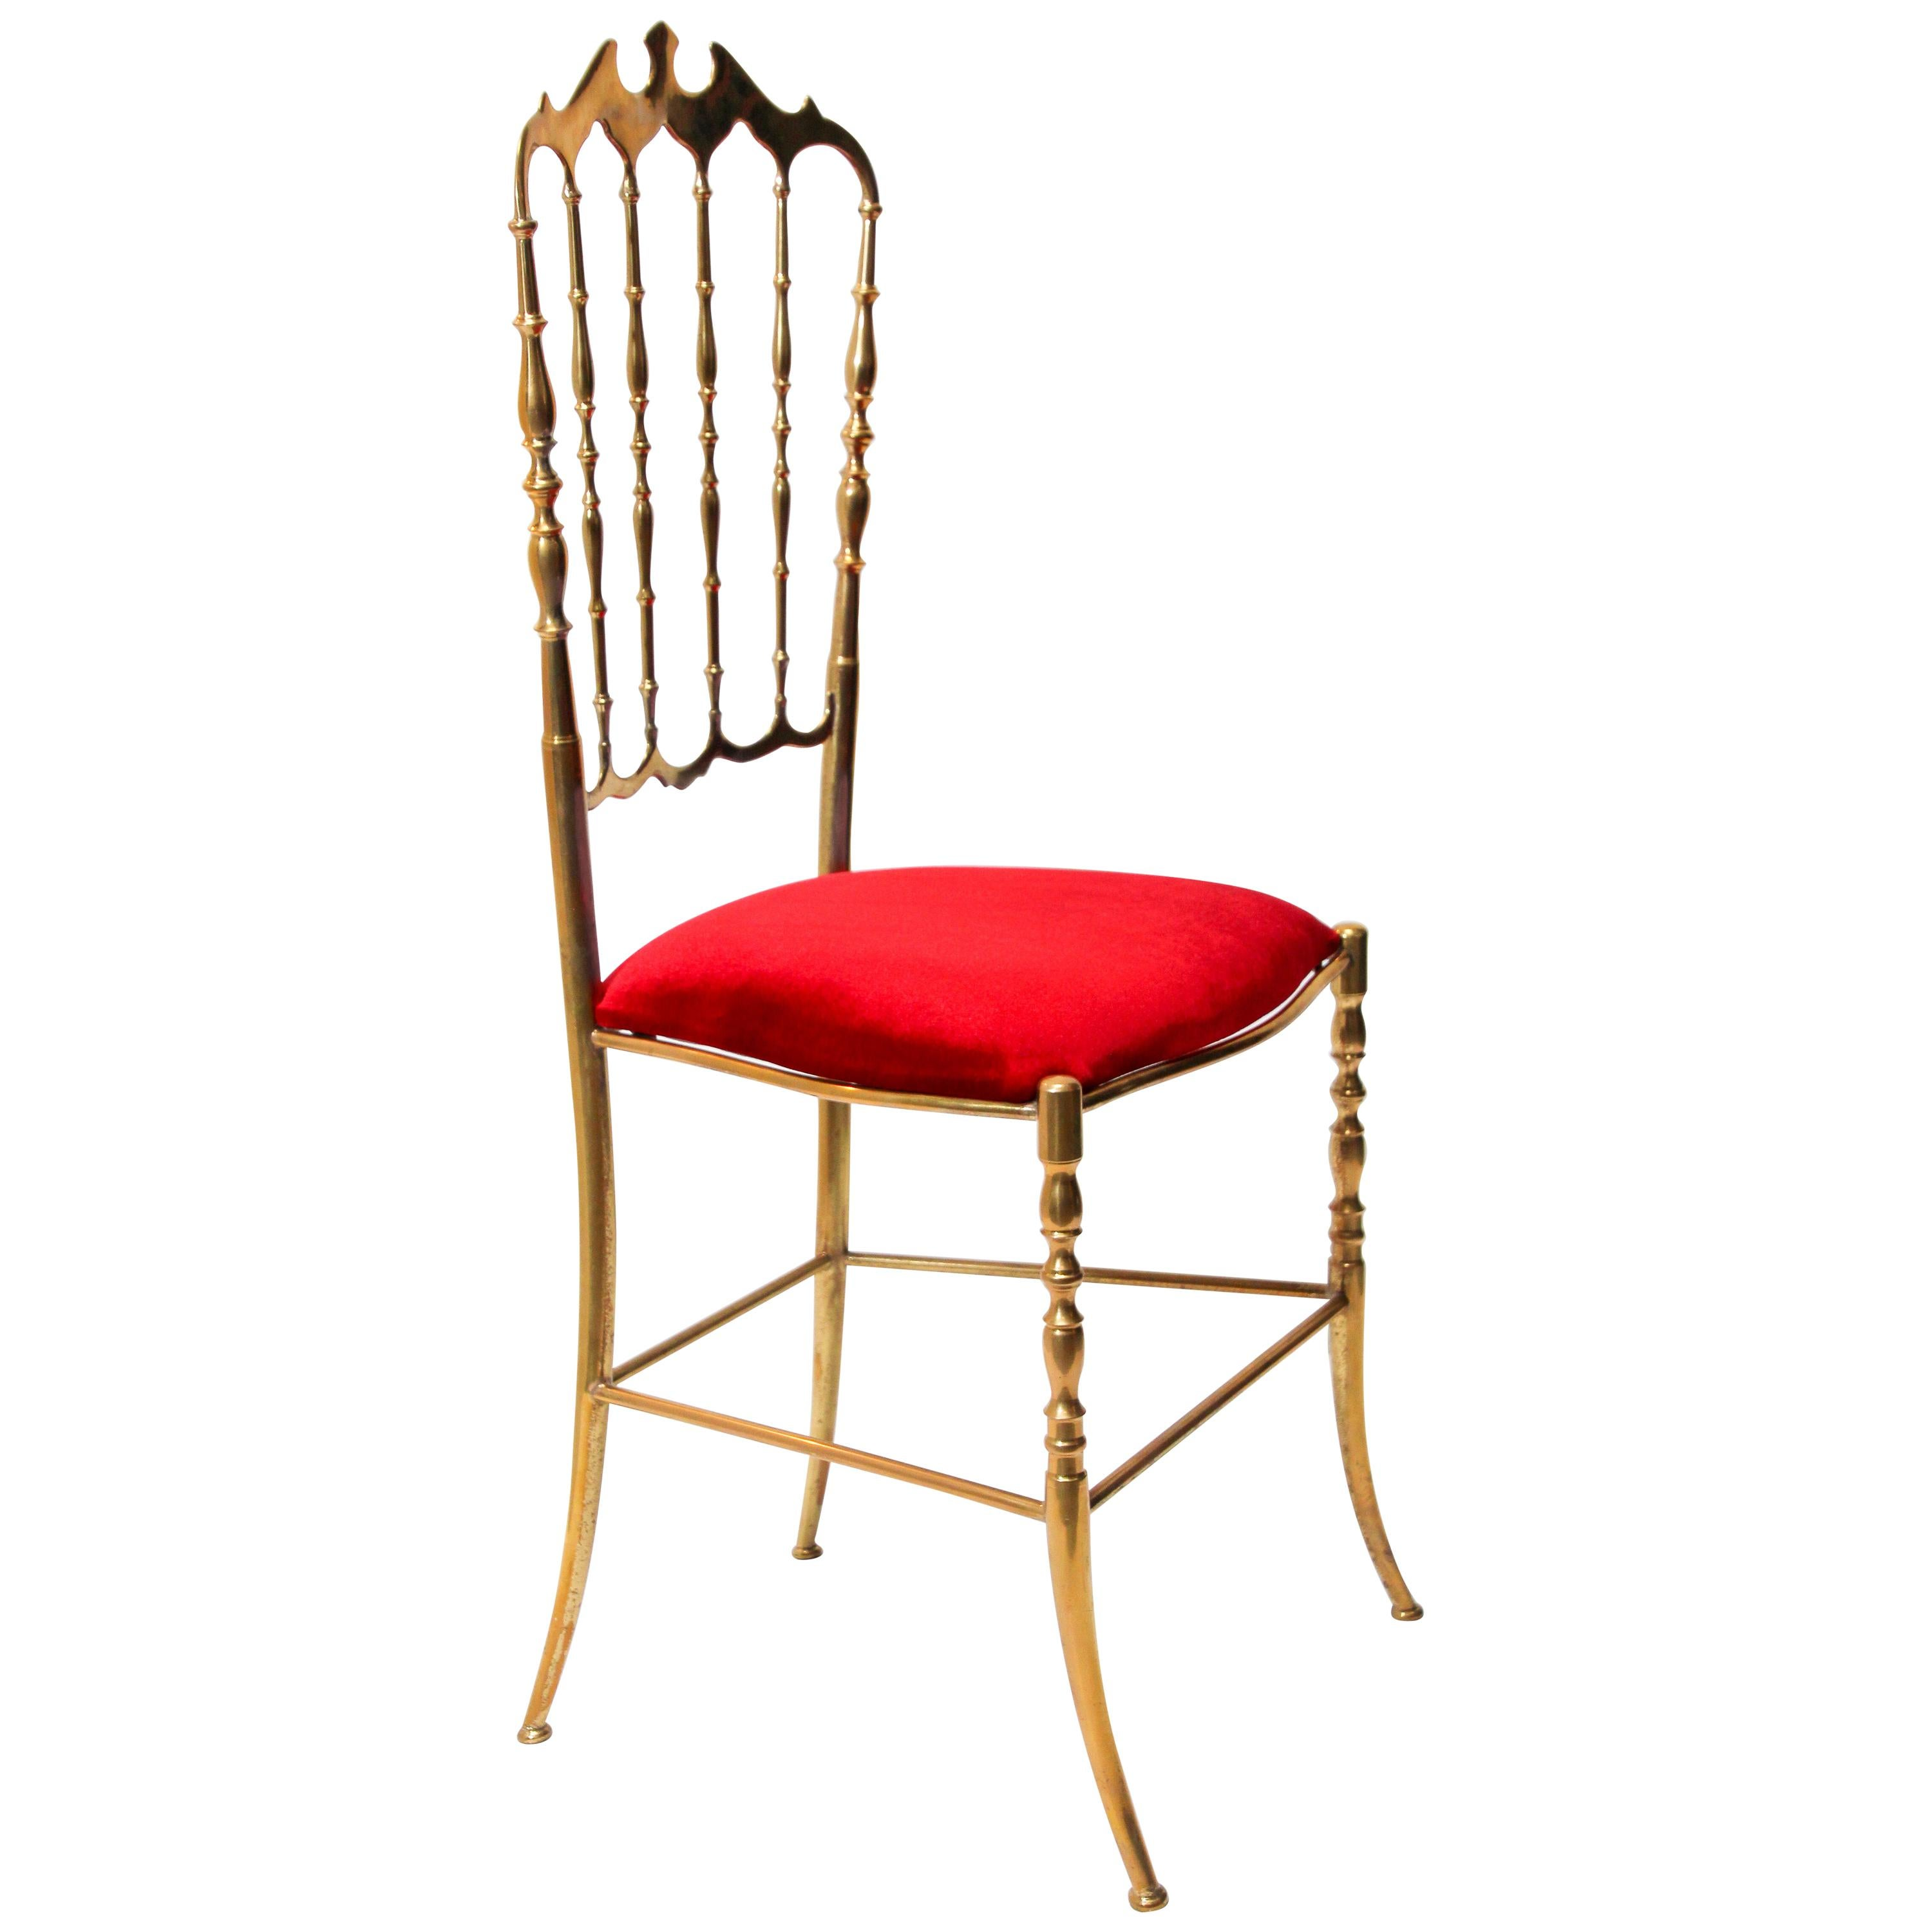 Polished Brass Chiavari Chair with Red Velvet, Italy, 1960s